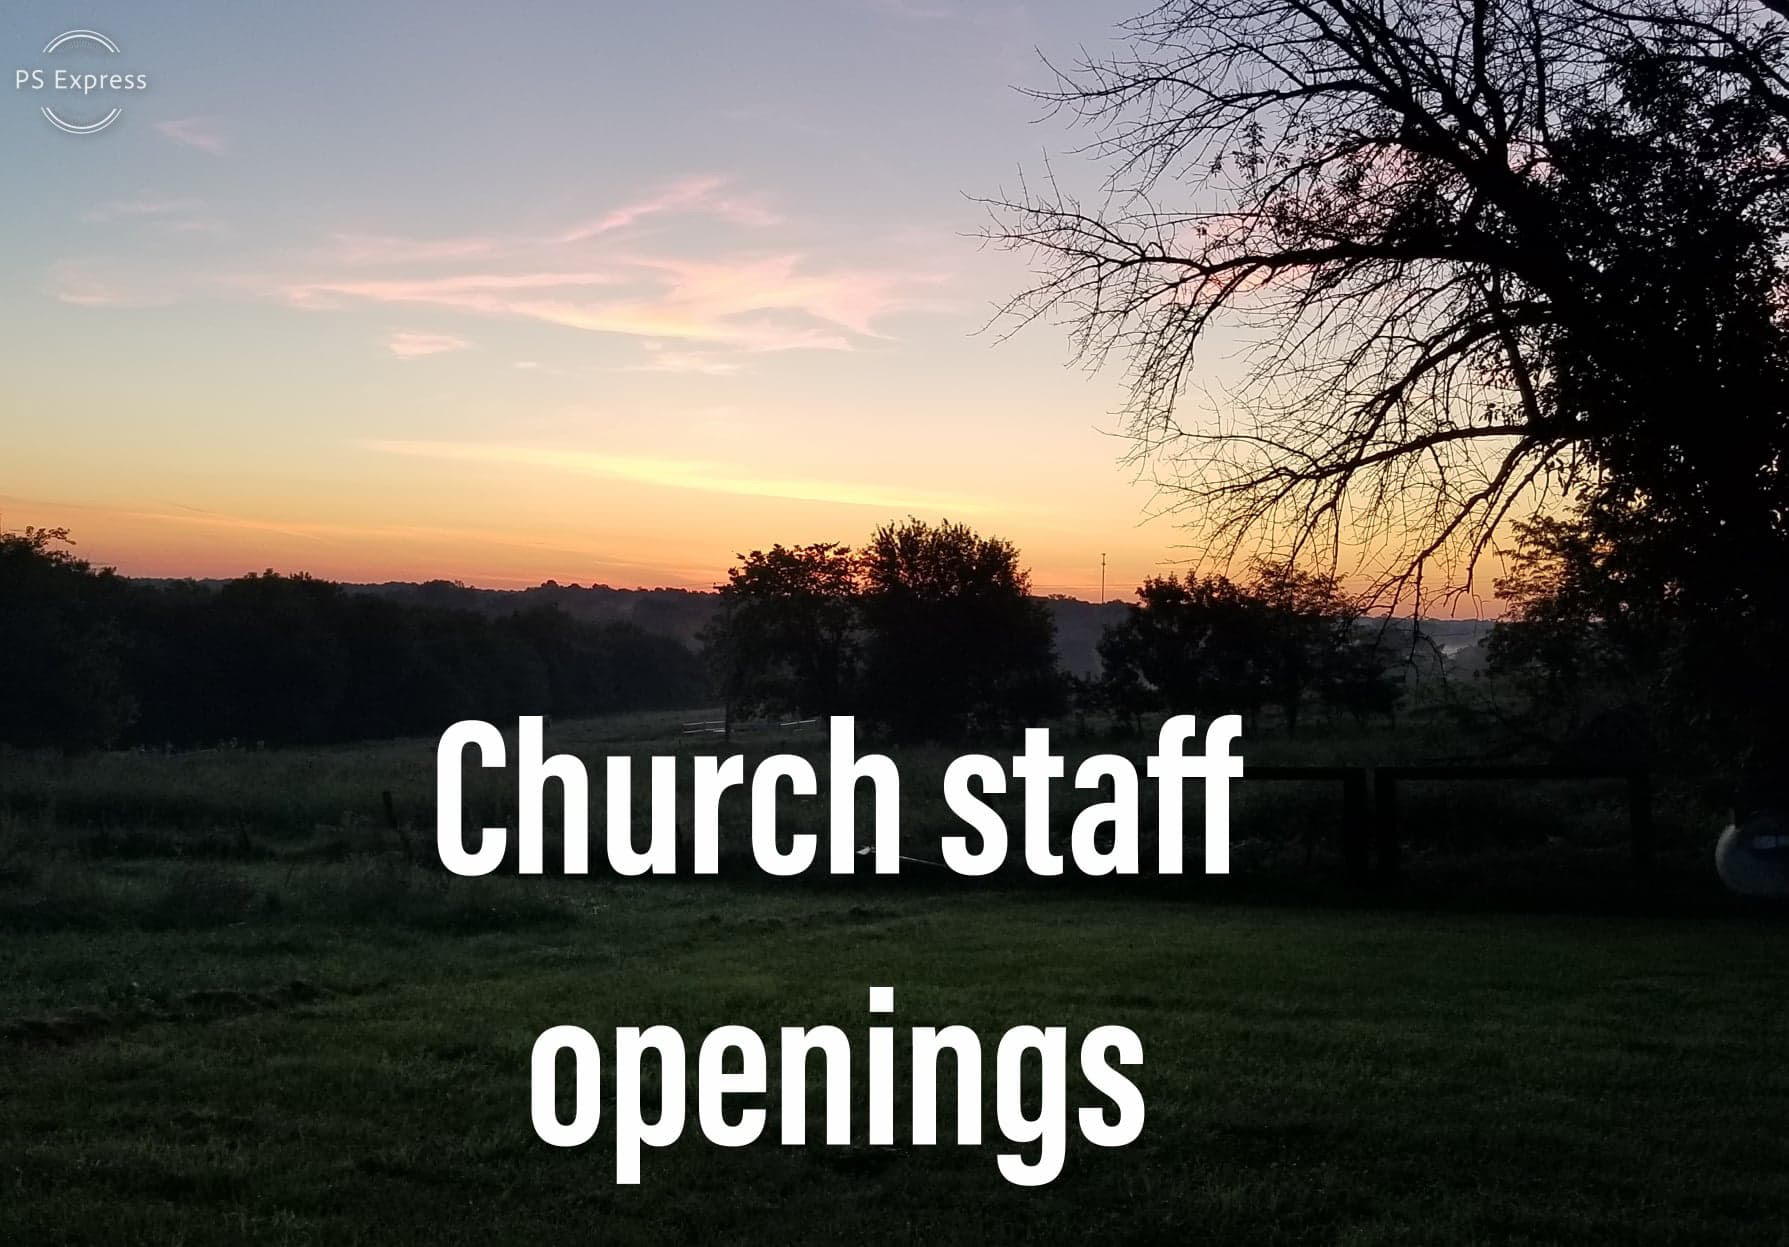 Church staff openings